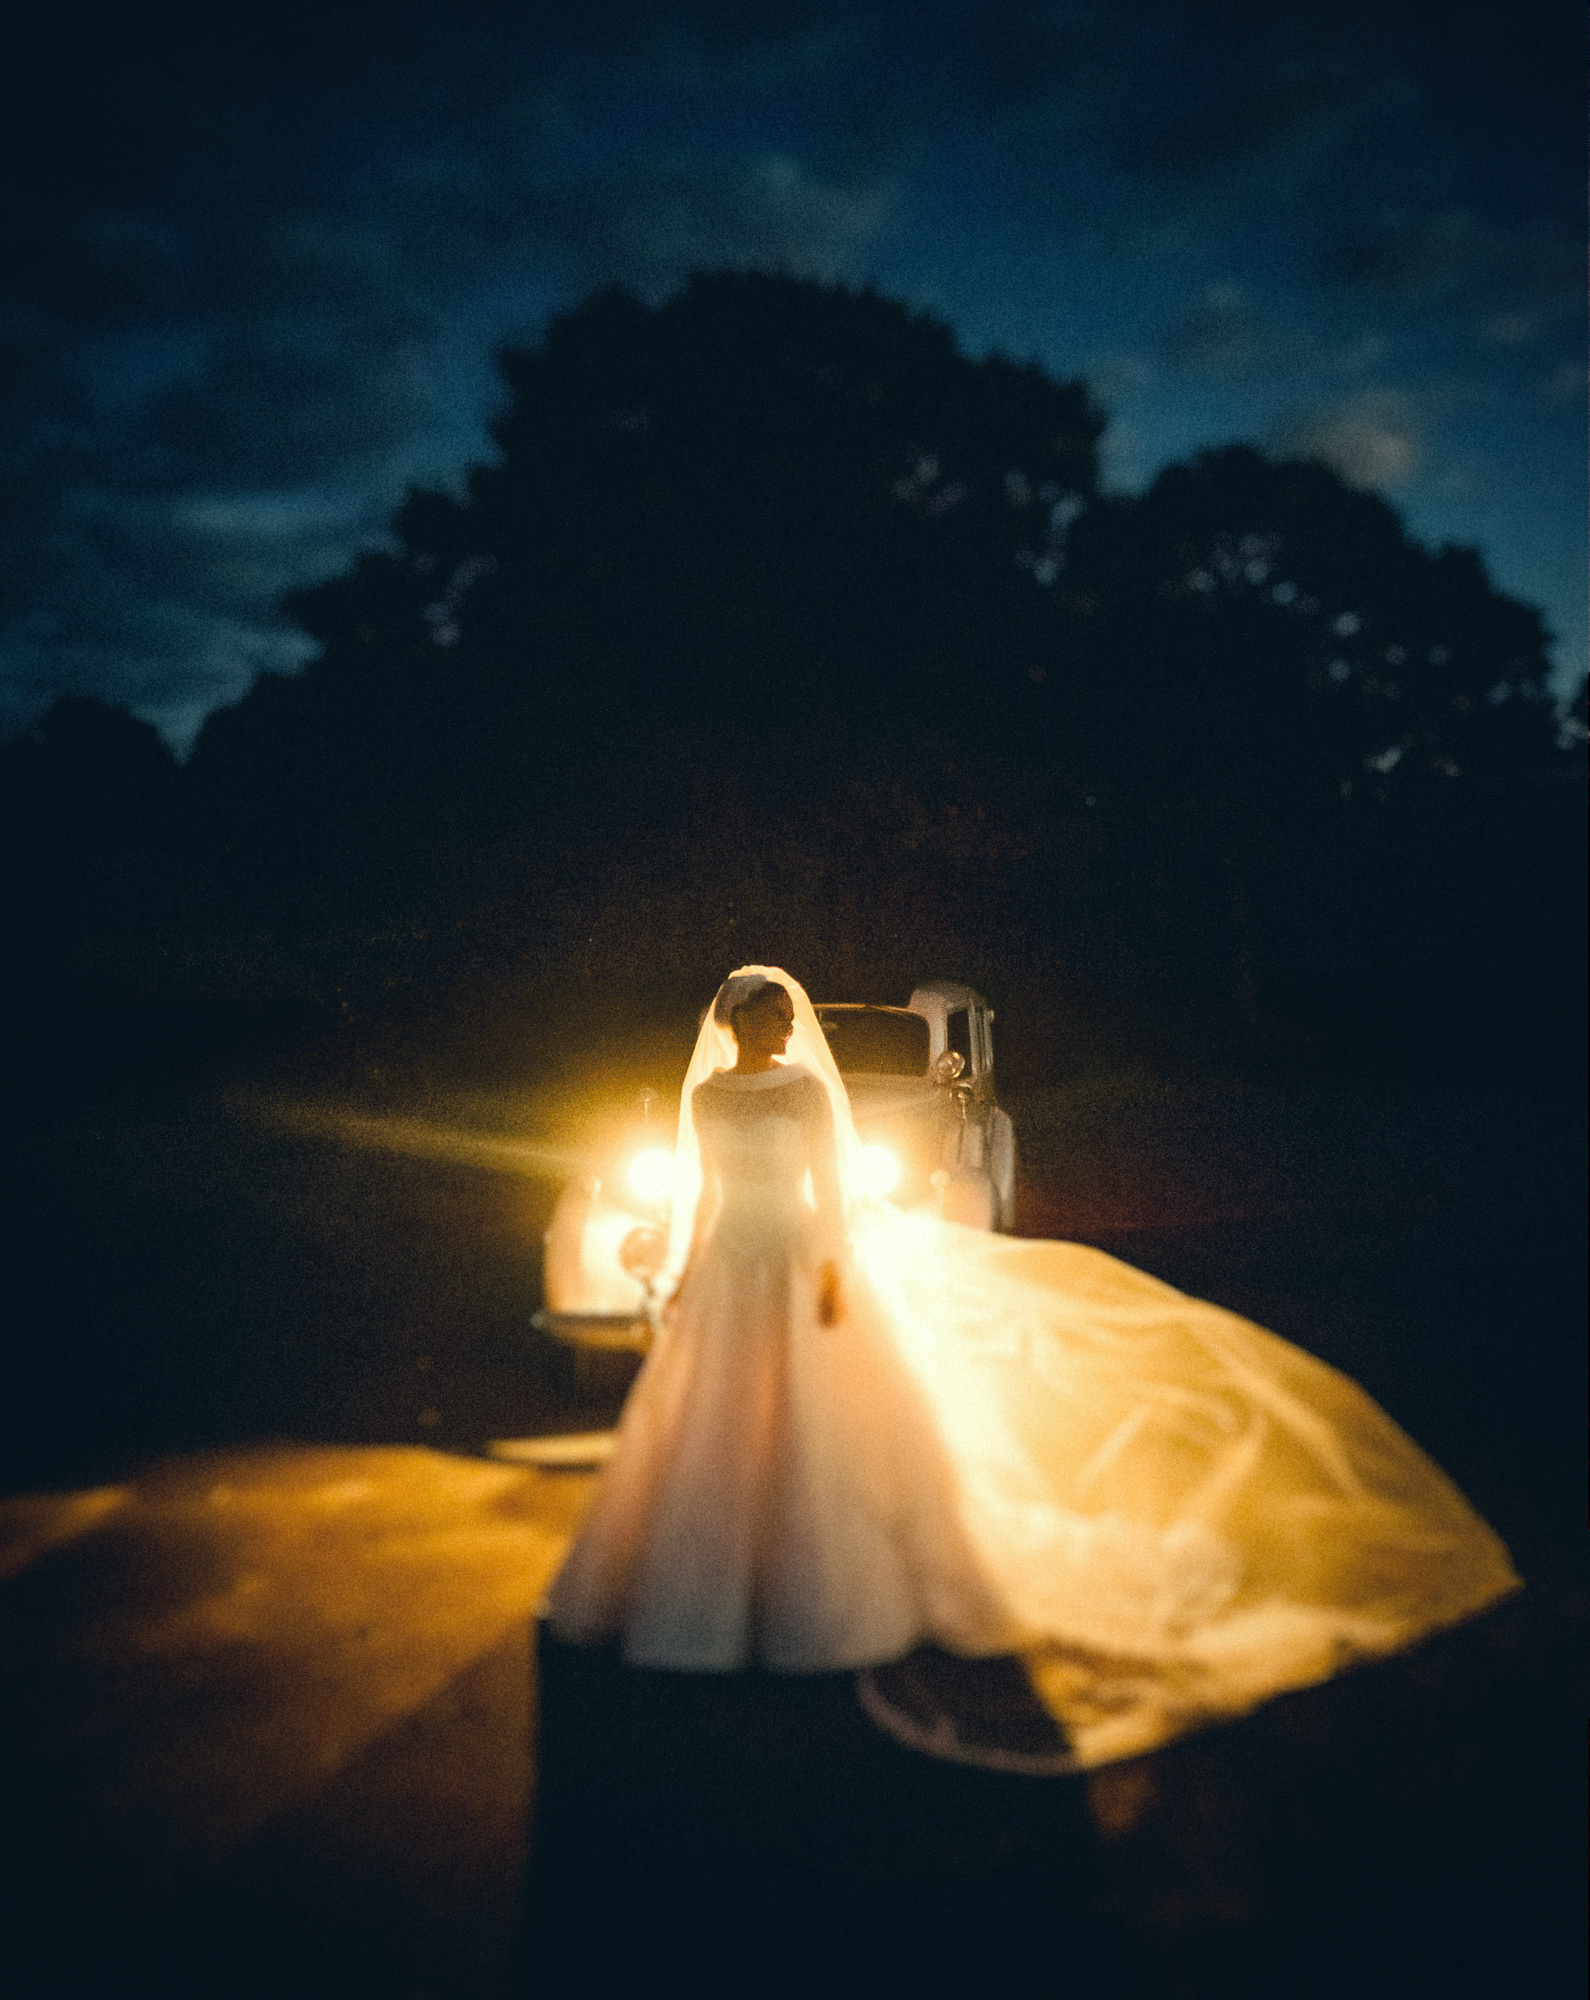 bride-with-classic-aline-gown-lit-up-by-lights-of-limousine-worlds-best-wedding-photos-nordica-sweden-wedding-photographers